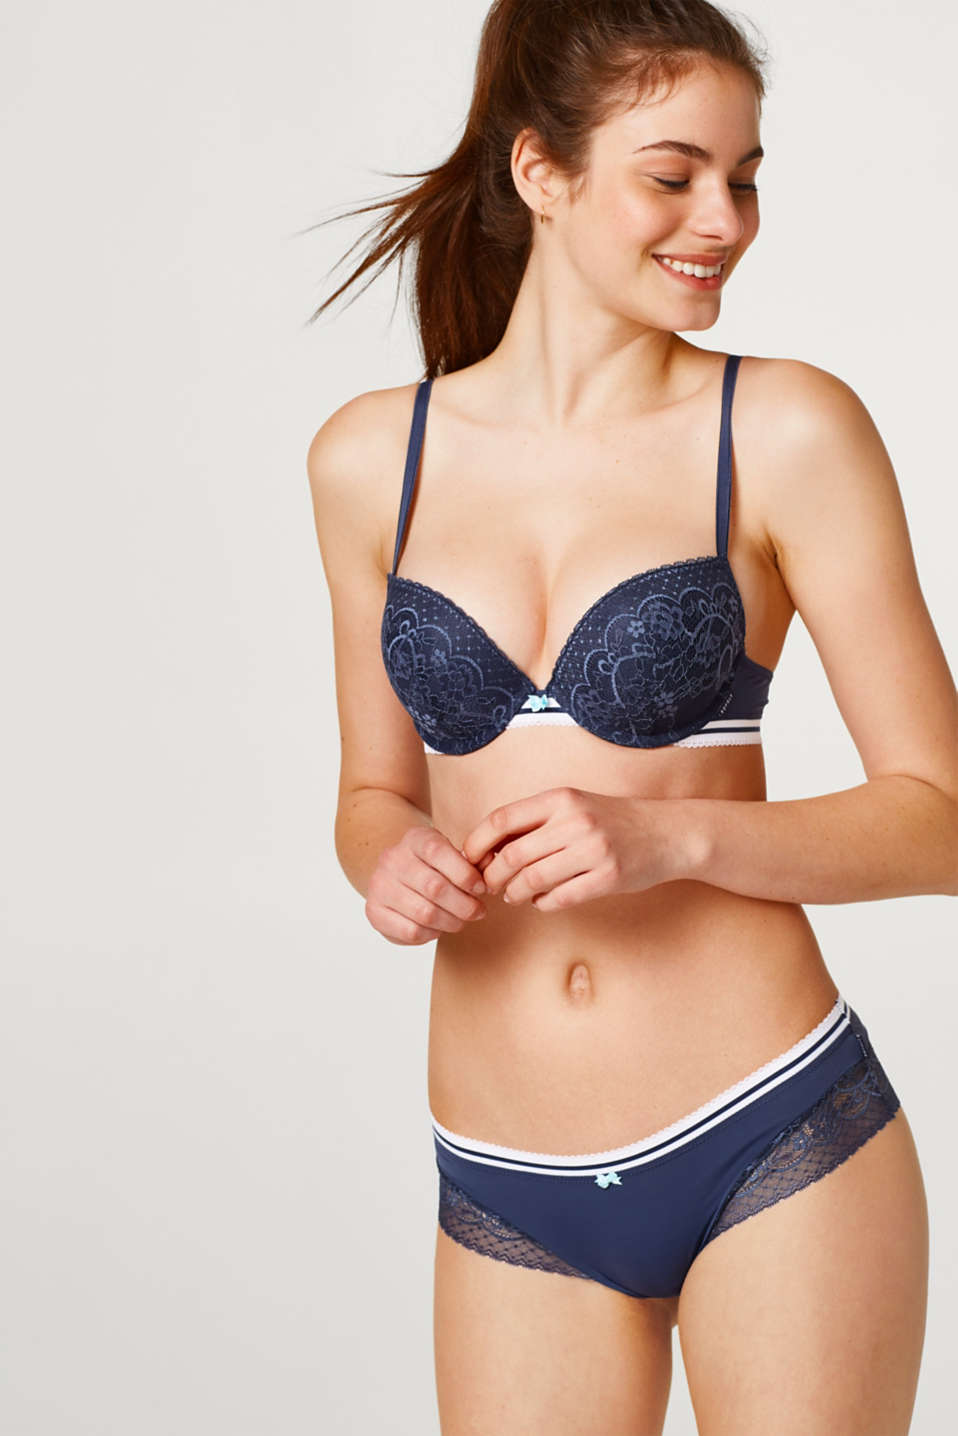 Esprit - Push-up bra in lace with an elasticated striped trim